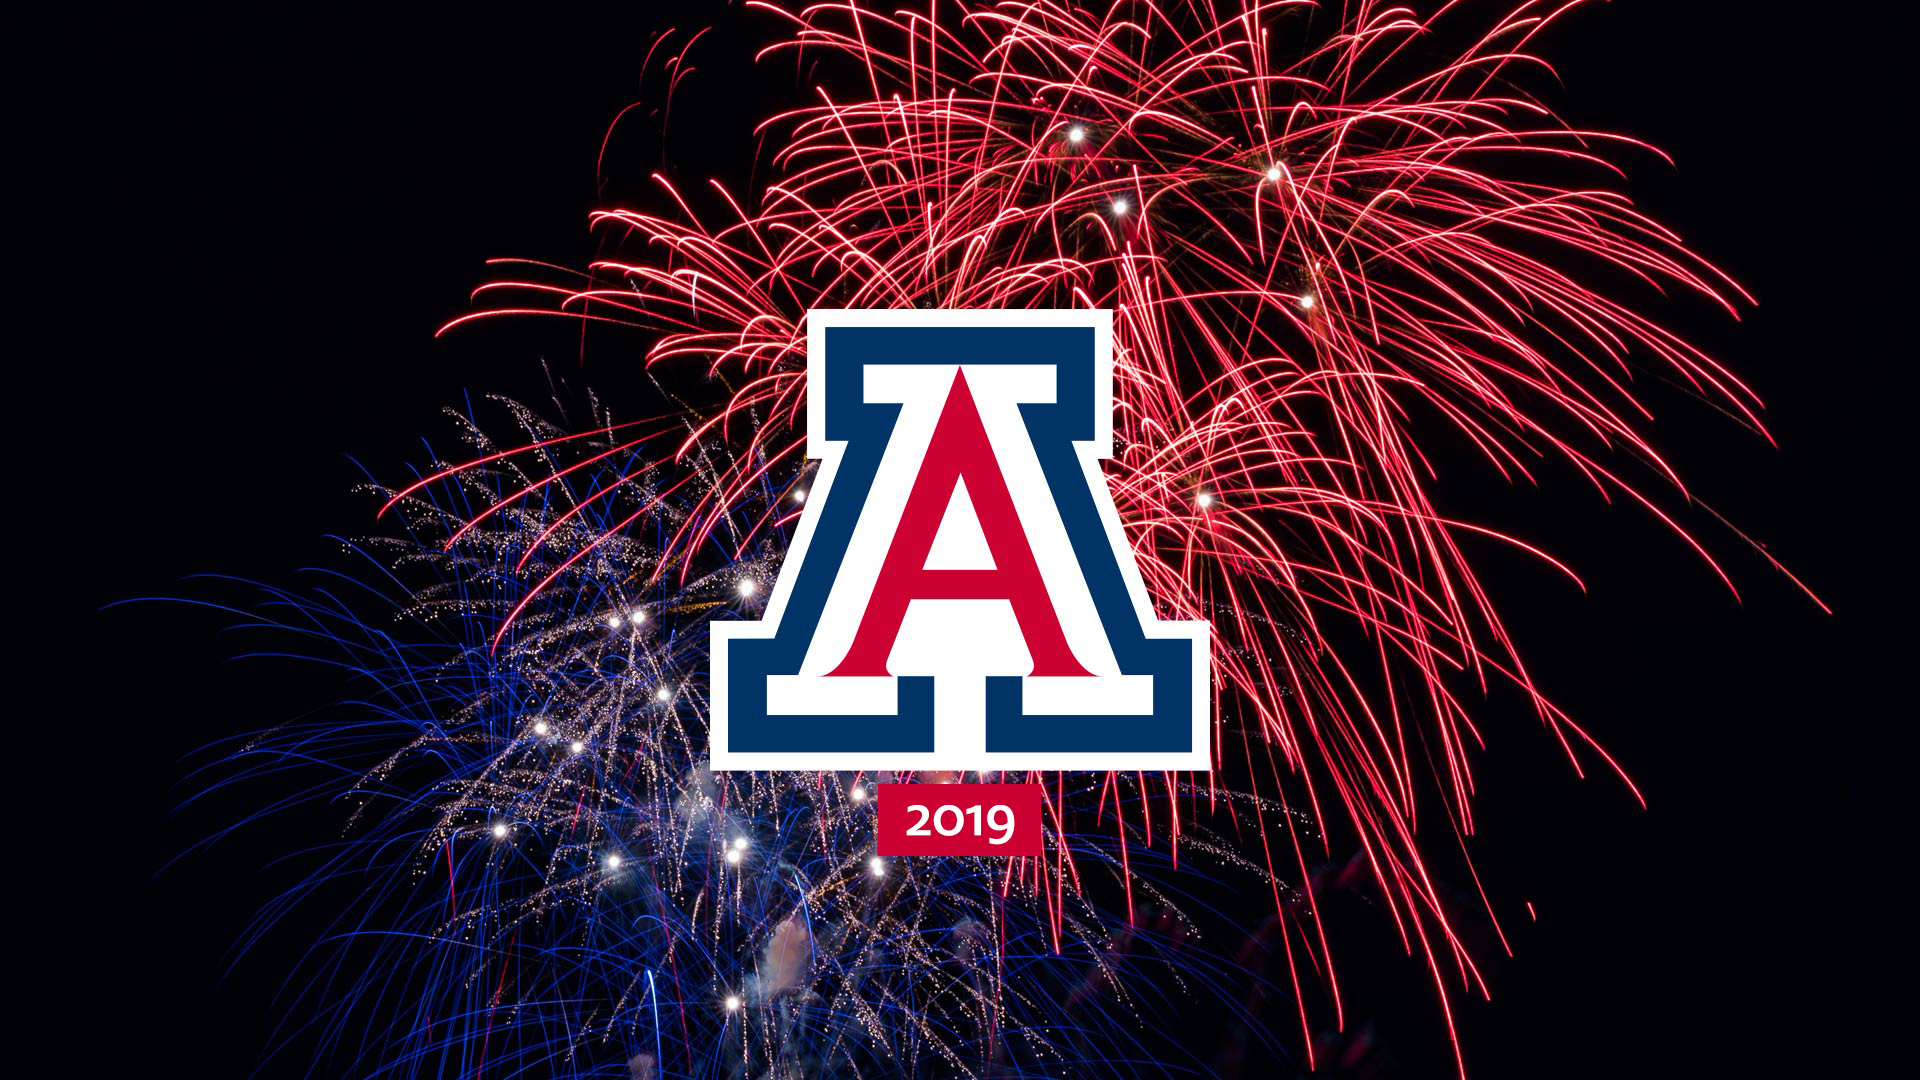 University of Arizona Commencement; Spring 2019